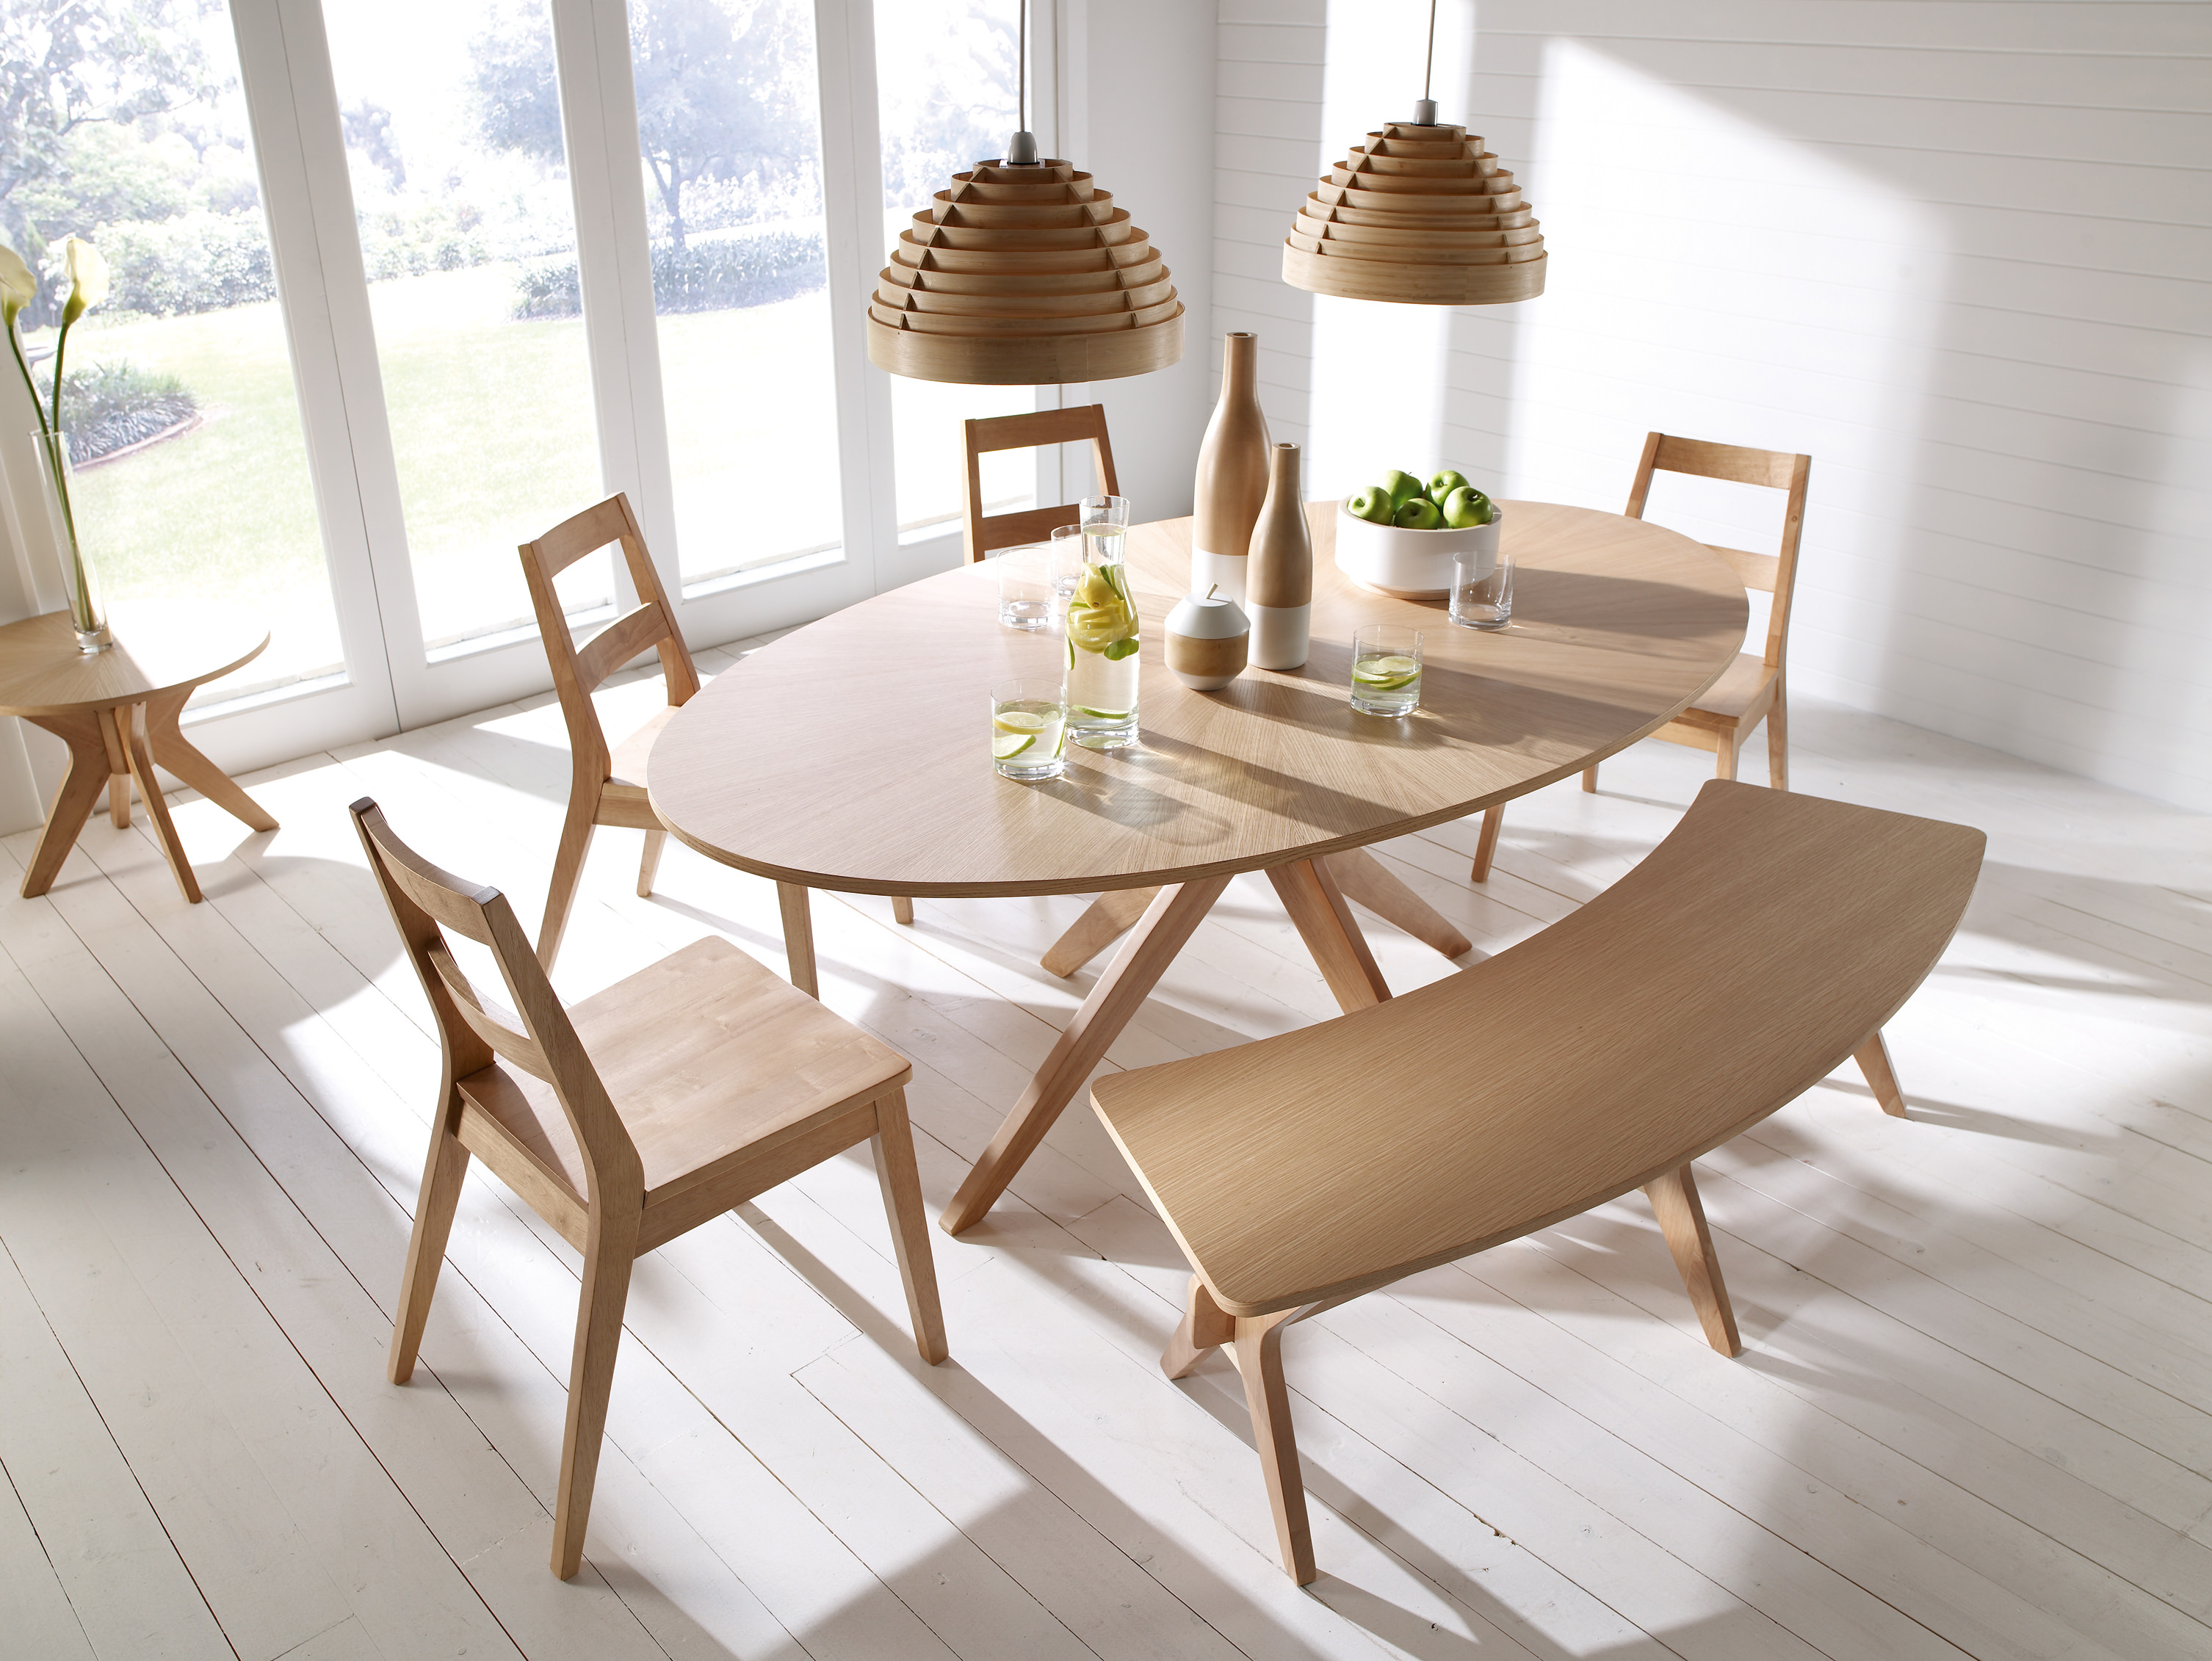 Solid White Oak Veneer Oval Dining Table And Chair Set